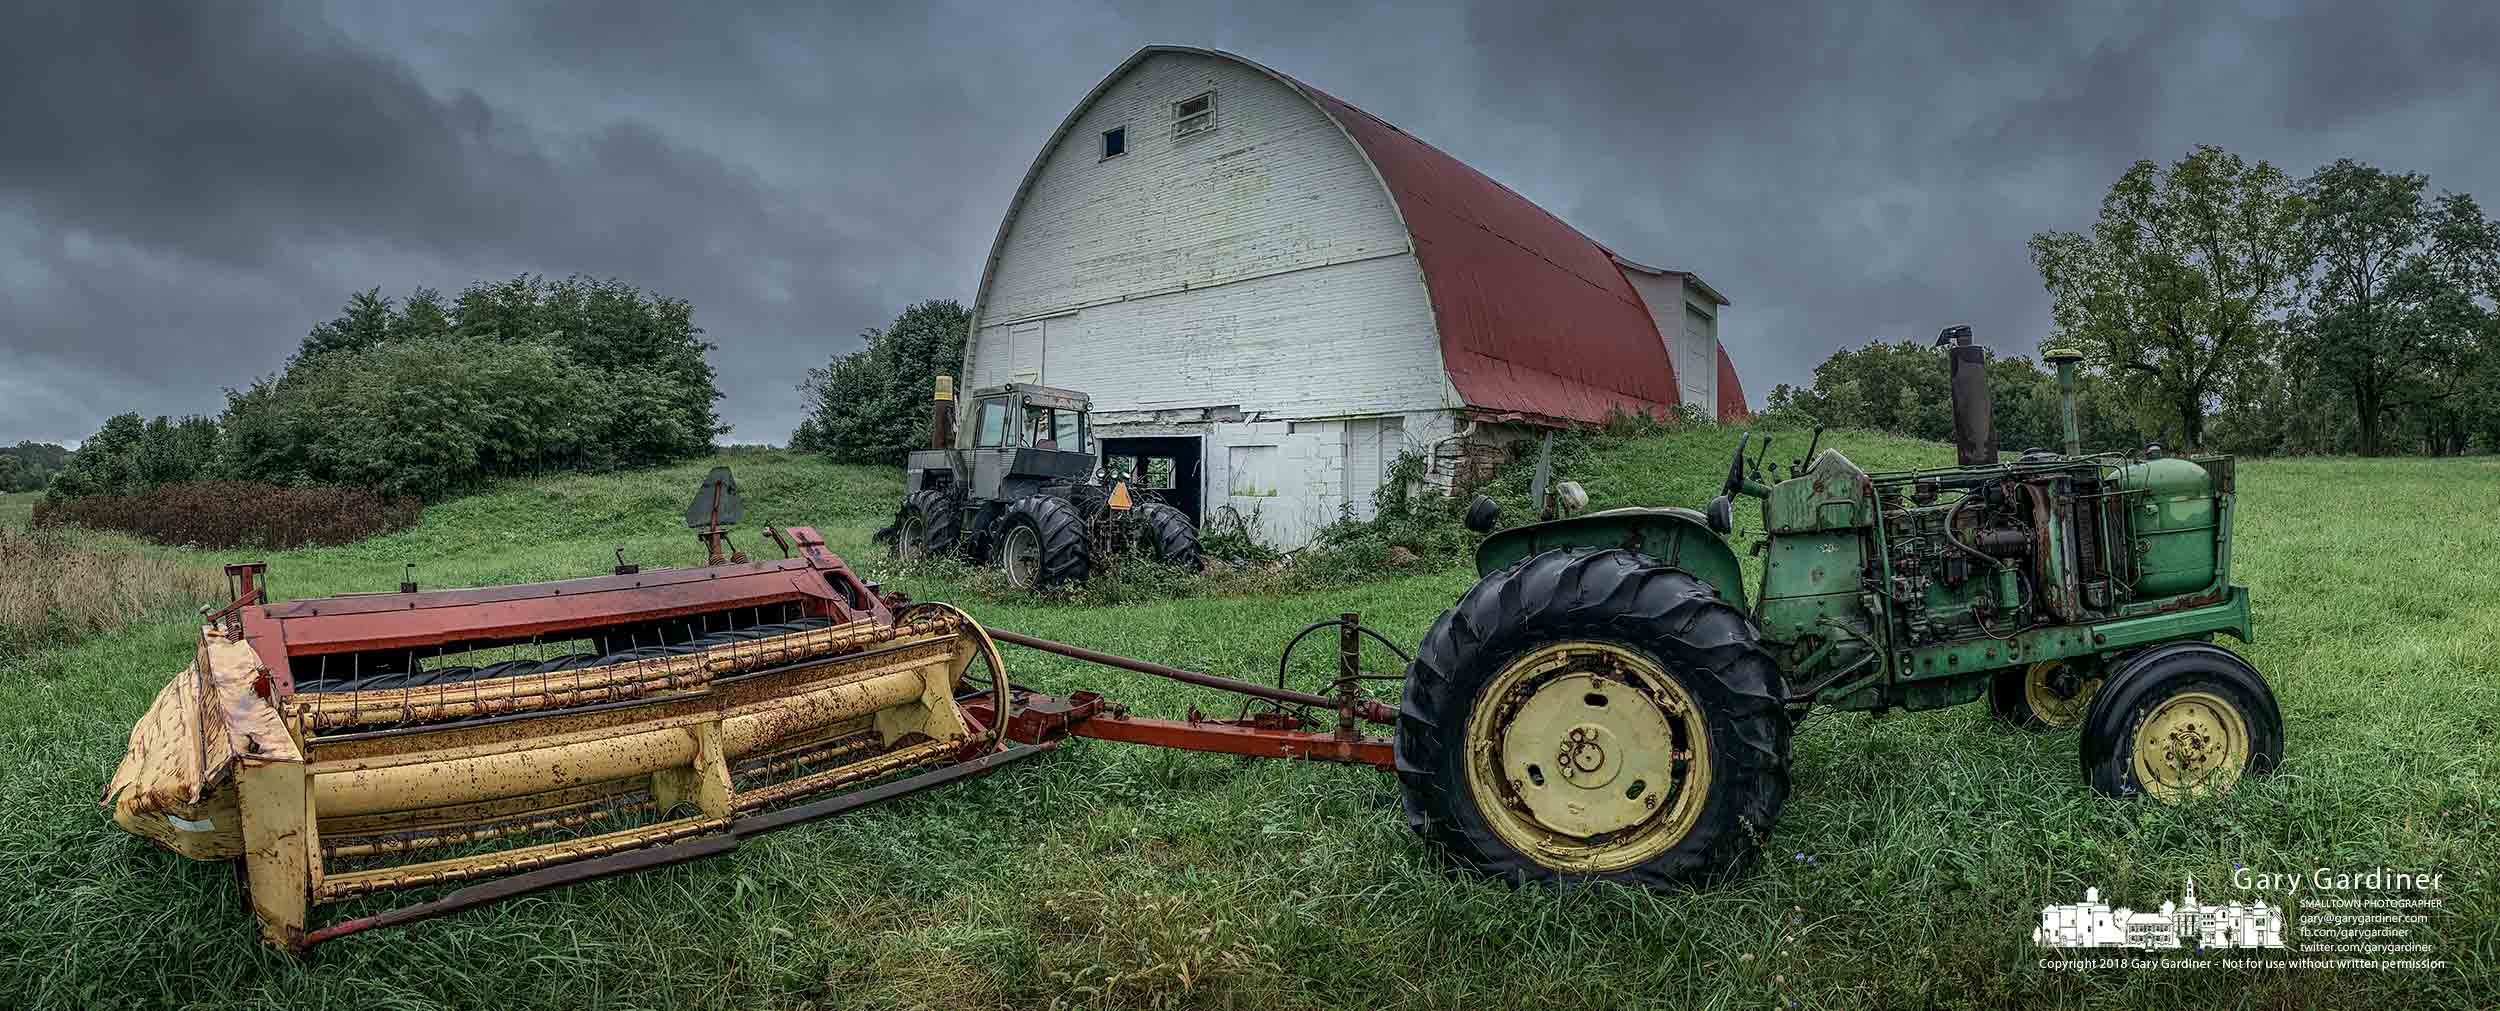 Storm clouds move across the Braun Farm fields where one of the farm's tractors and mower sit idle in the early fall rain. My Final Photo for Sept. 24, 2018.